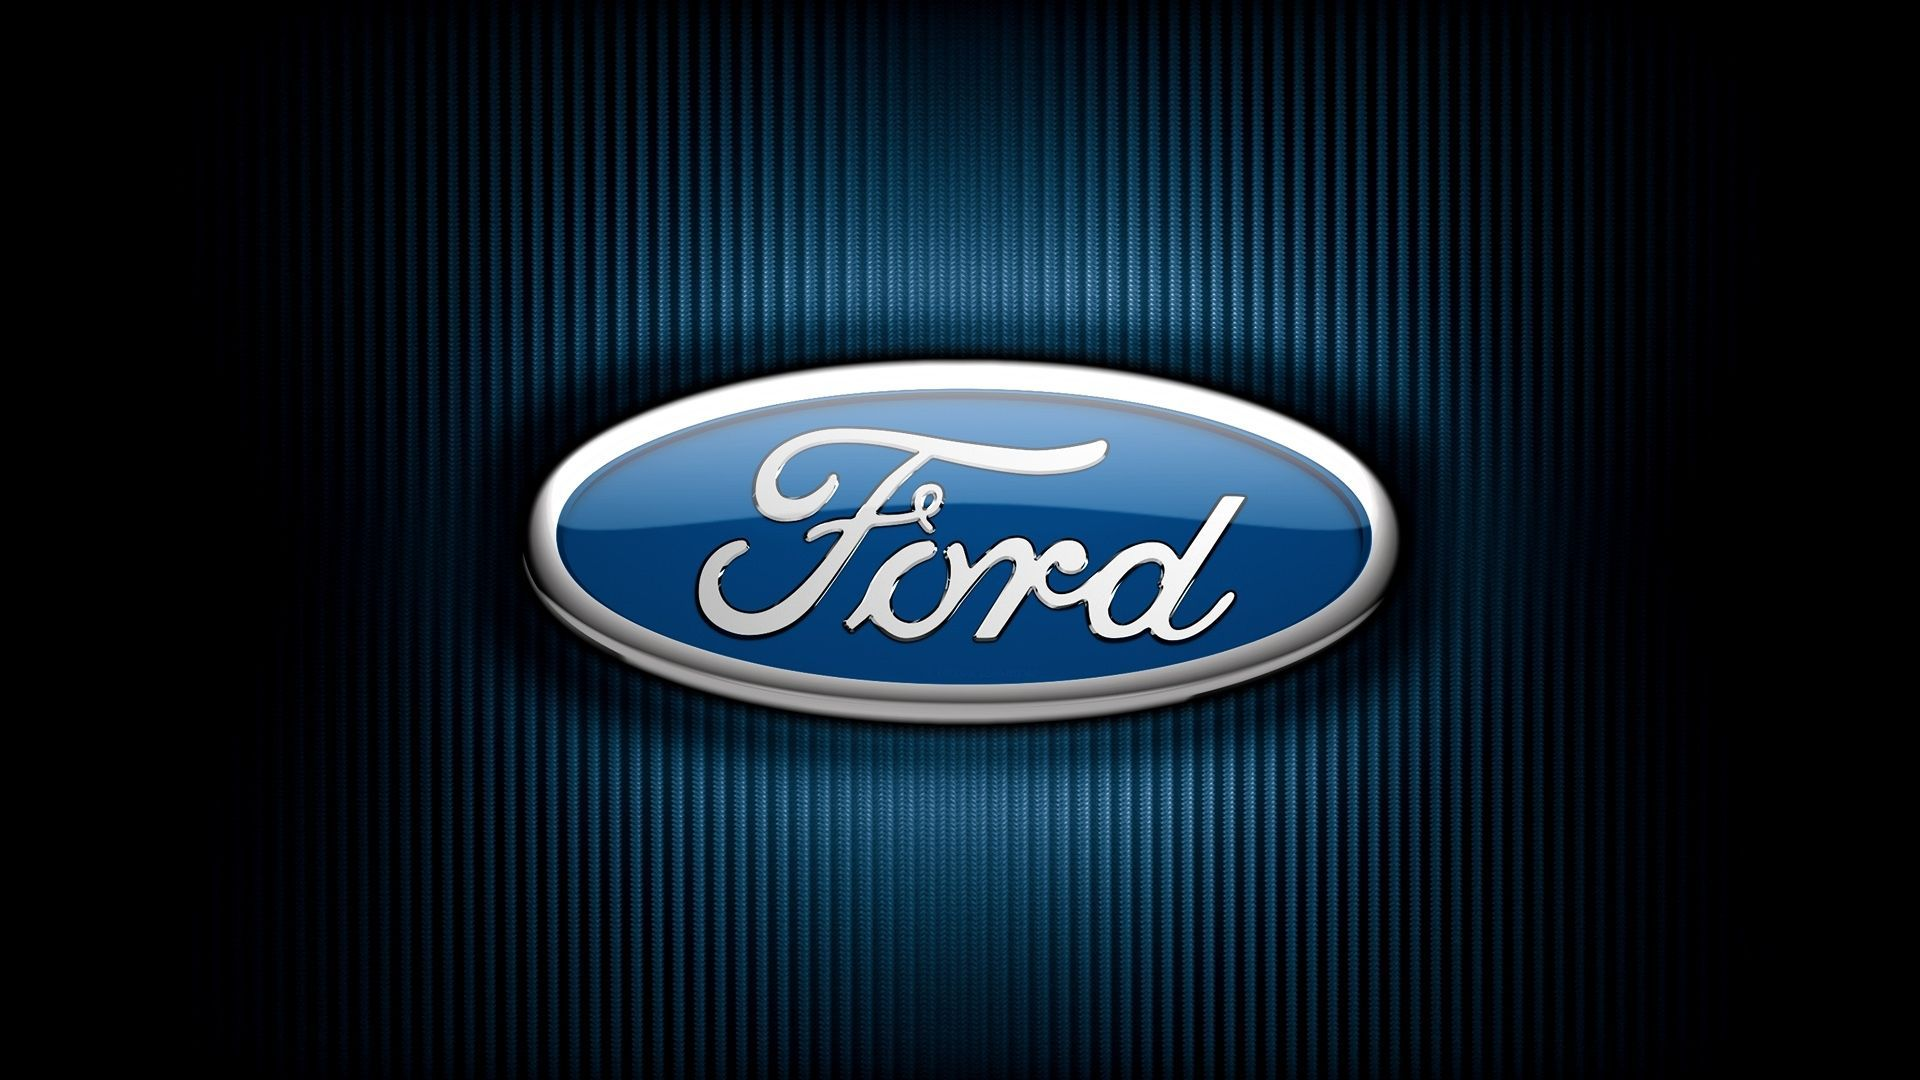 Ford Logo Wallpapers Top Free Ford Logo Backgrounds